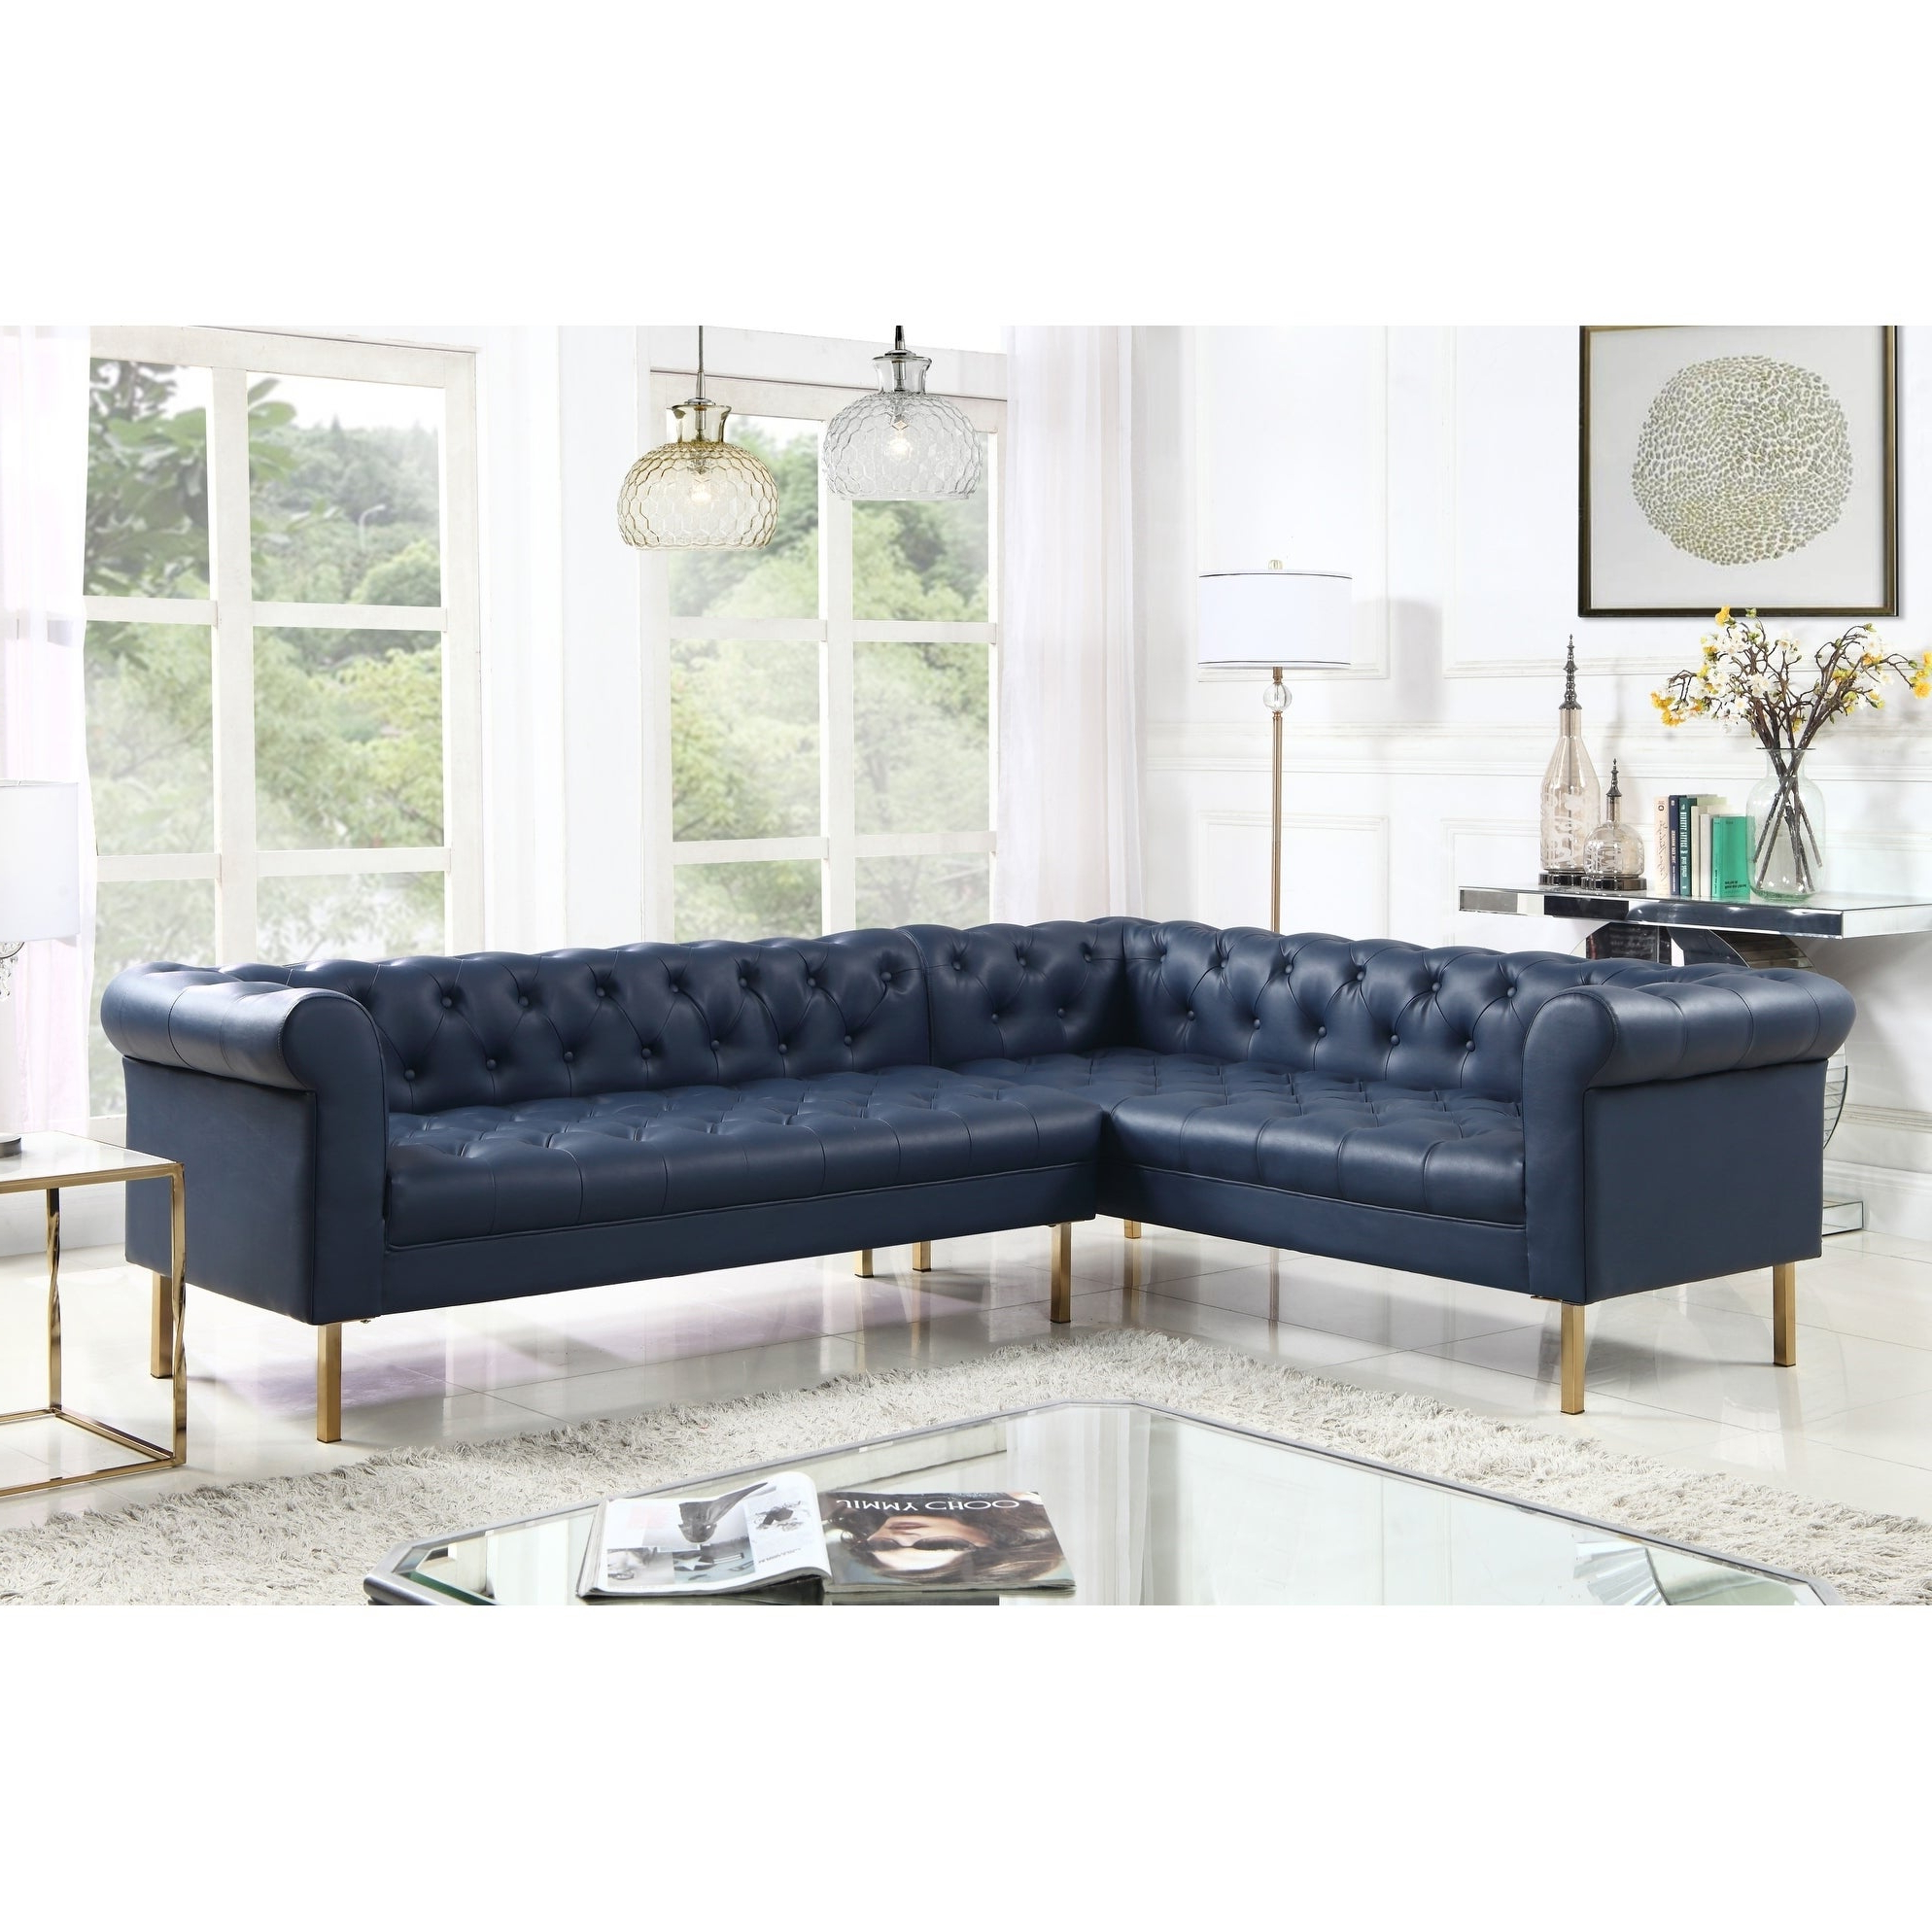 2019 Jimmie 3 Piece Sectionals Seating Group With Cushions Throughout Chic Home Julian Left Facing Sectional Sofa Pu Leather Upholstered (Gallery 23 of 25)